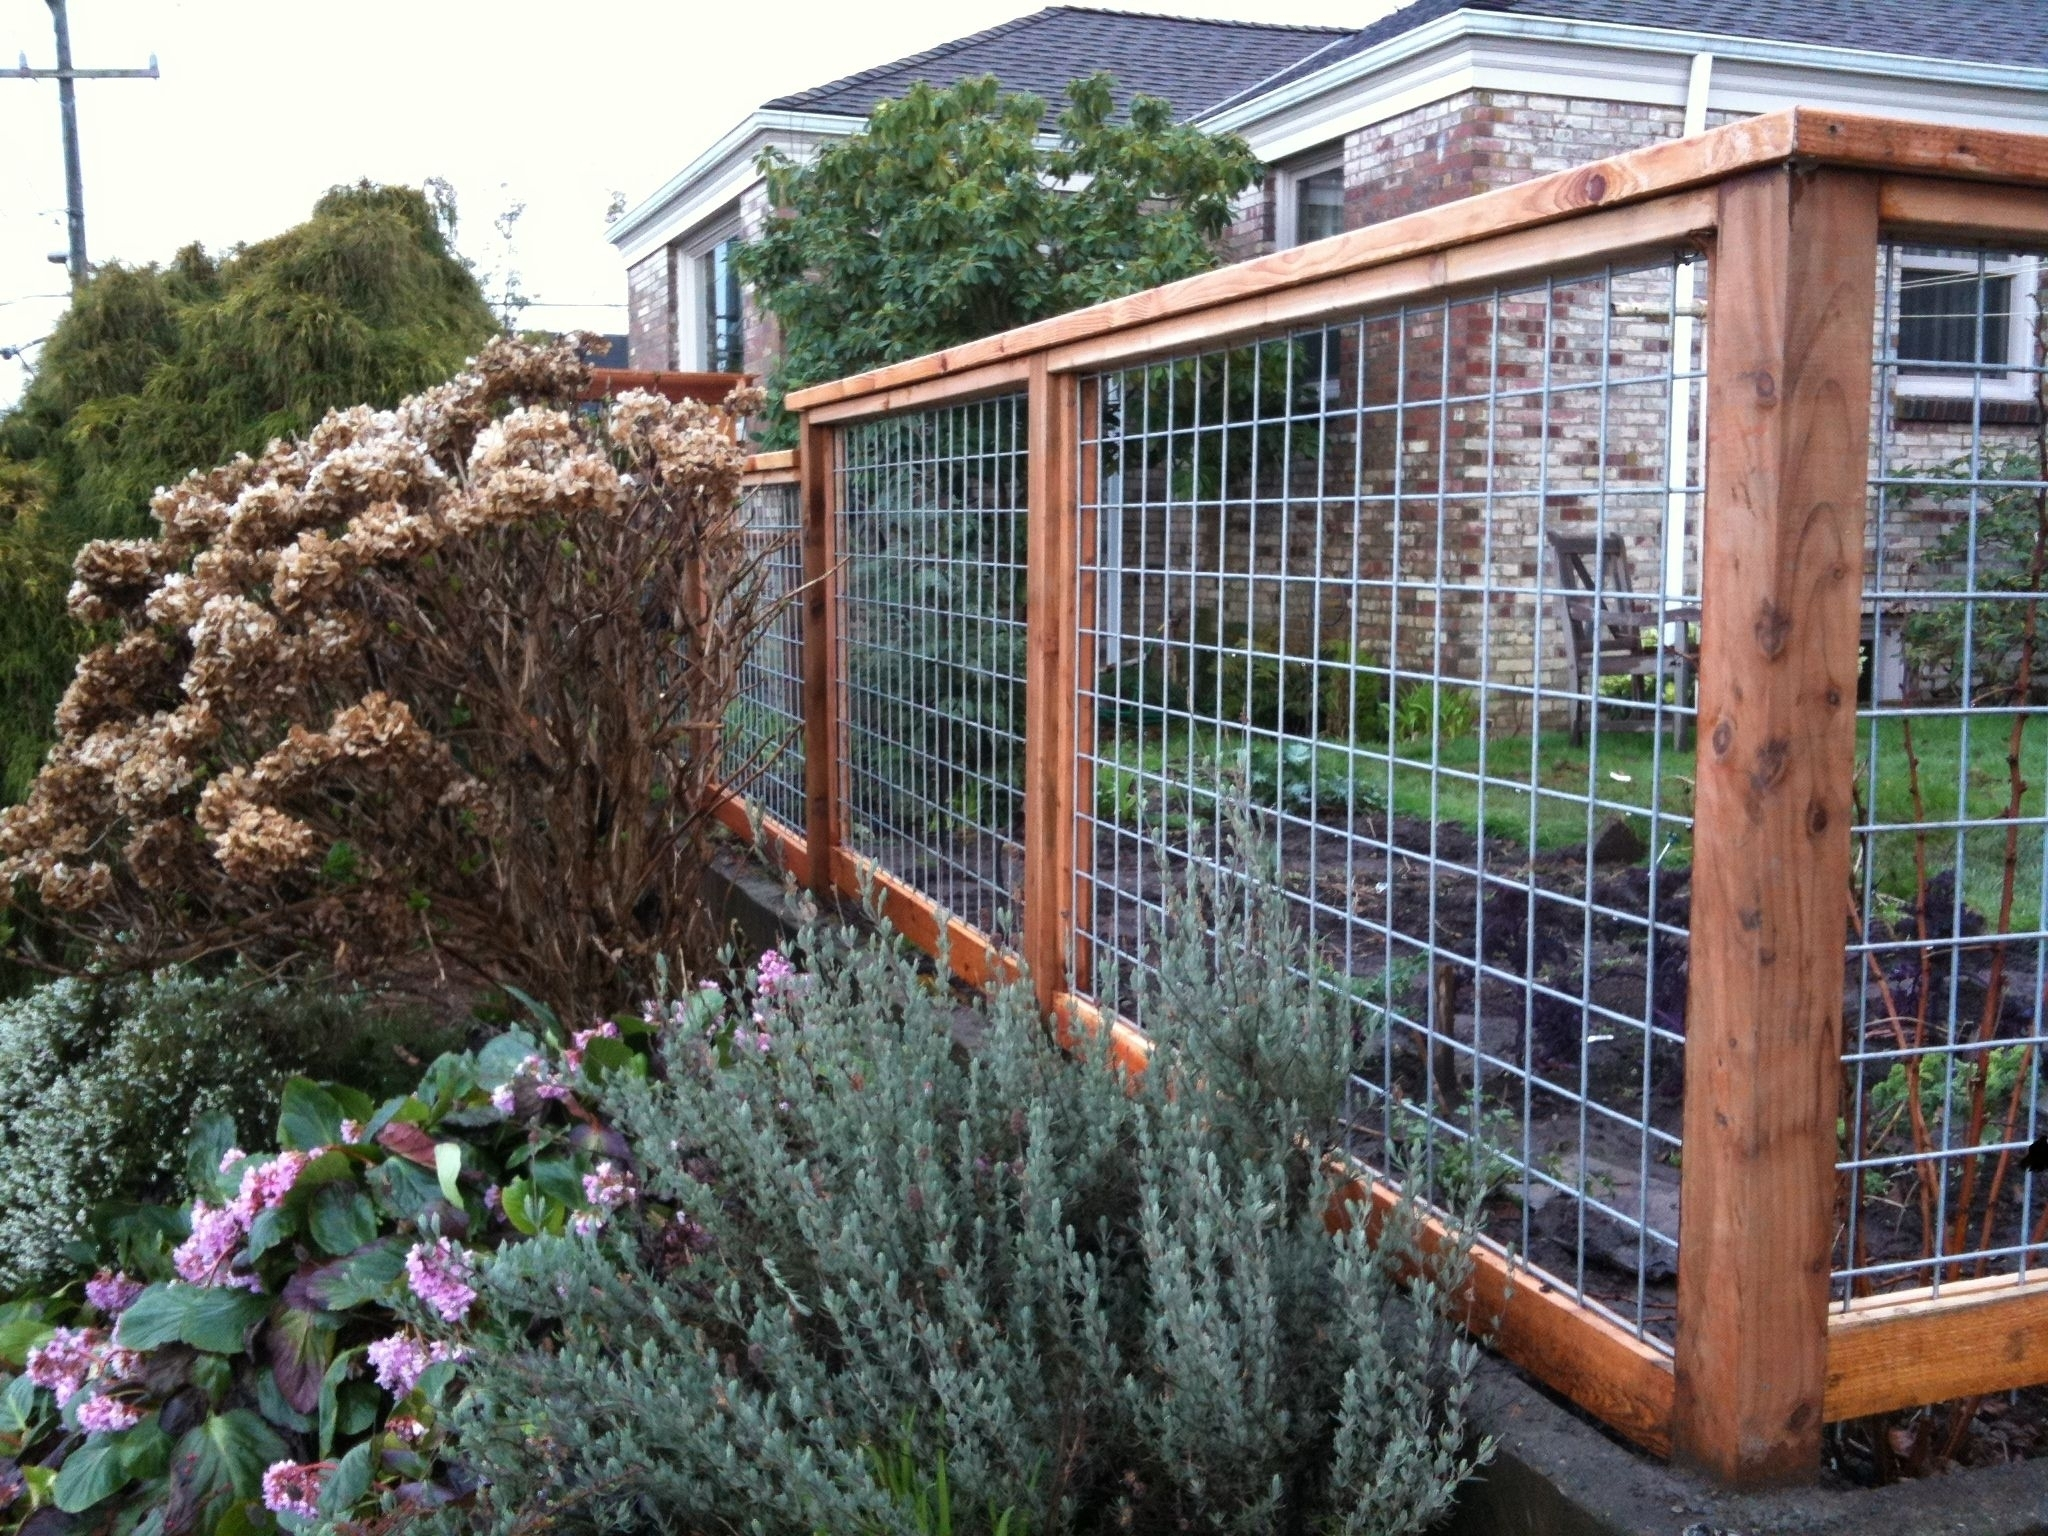 Awesome-Backyard-Garden-Fence-Ideas -Regarding-Inspirational-Home-Decorating intended for Backyard Garden Fence Ideas